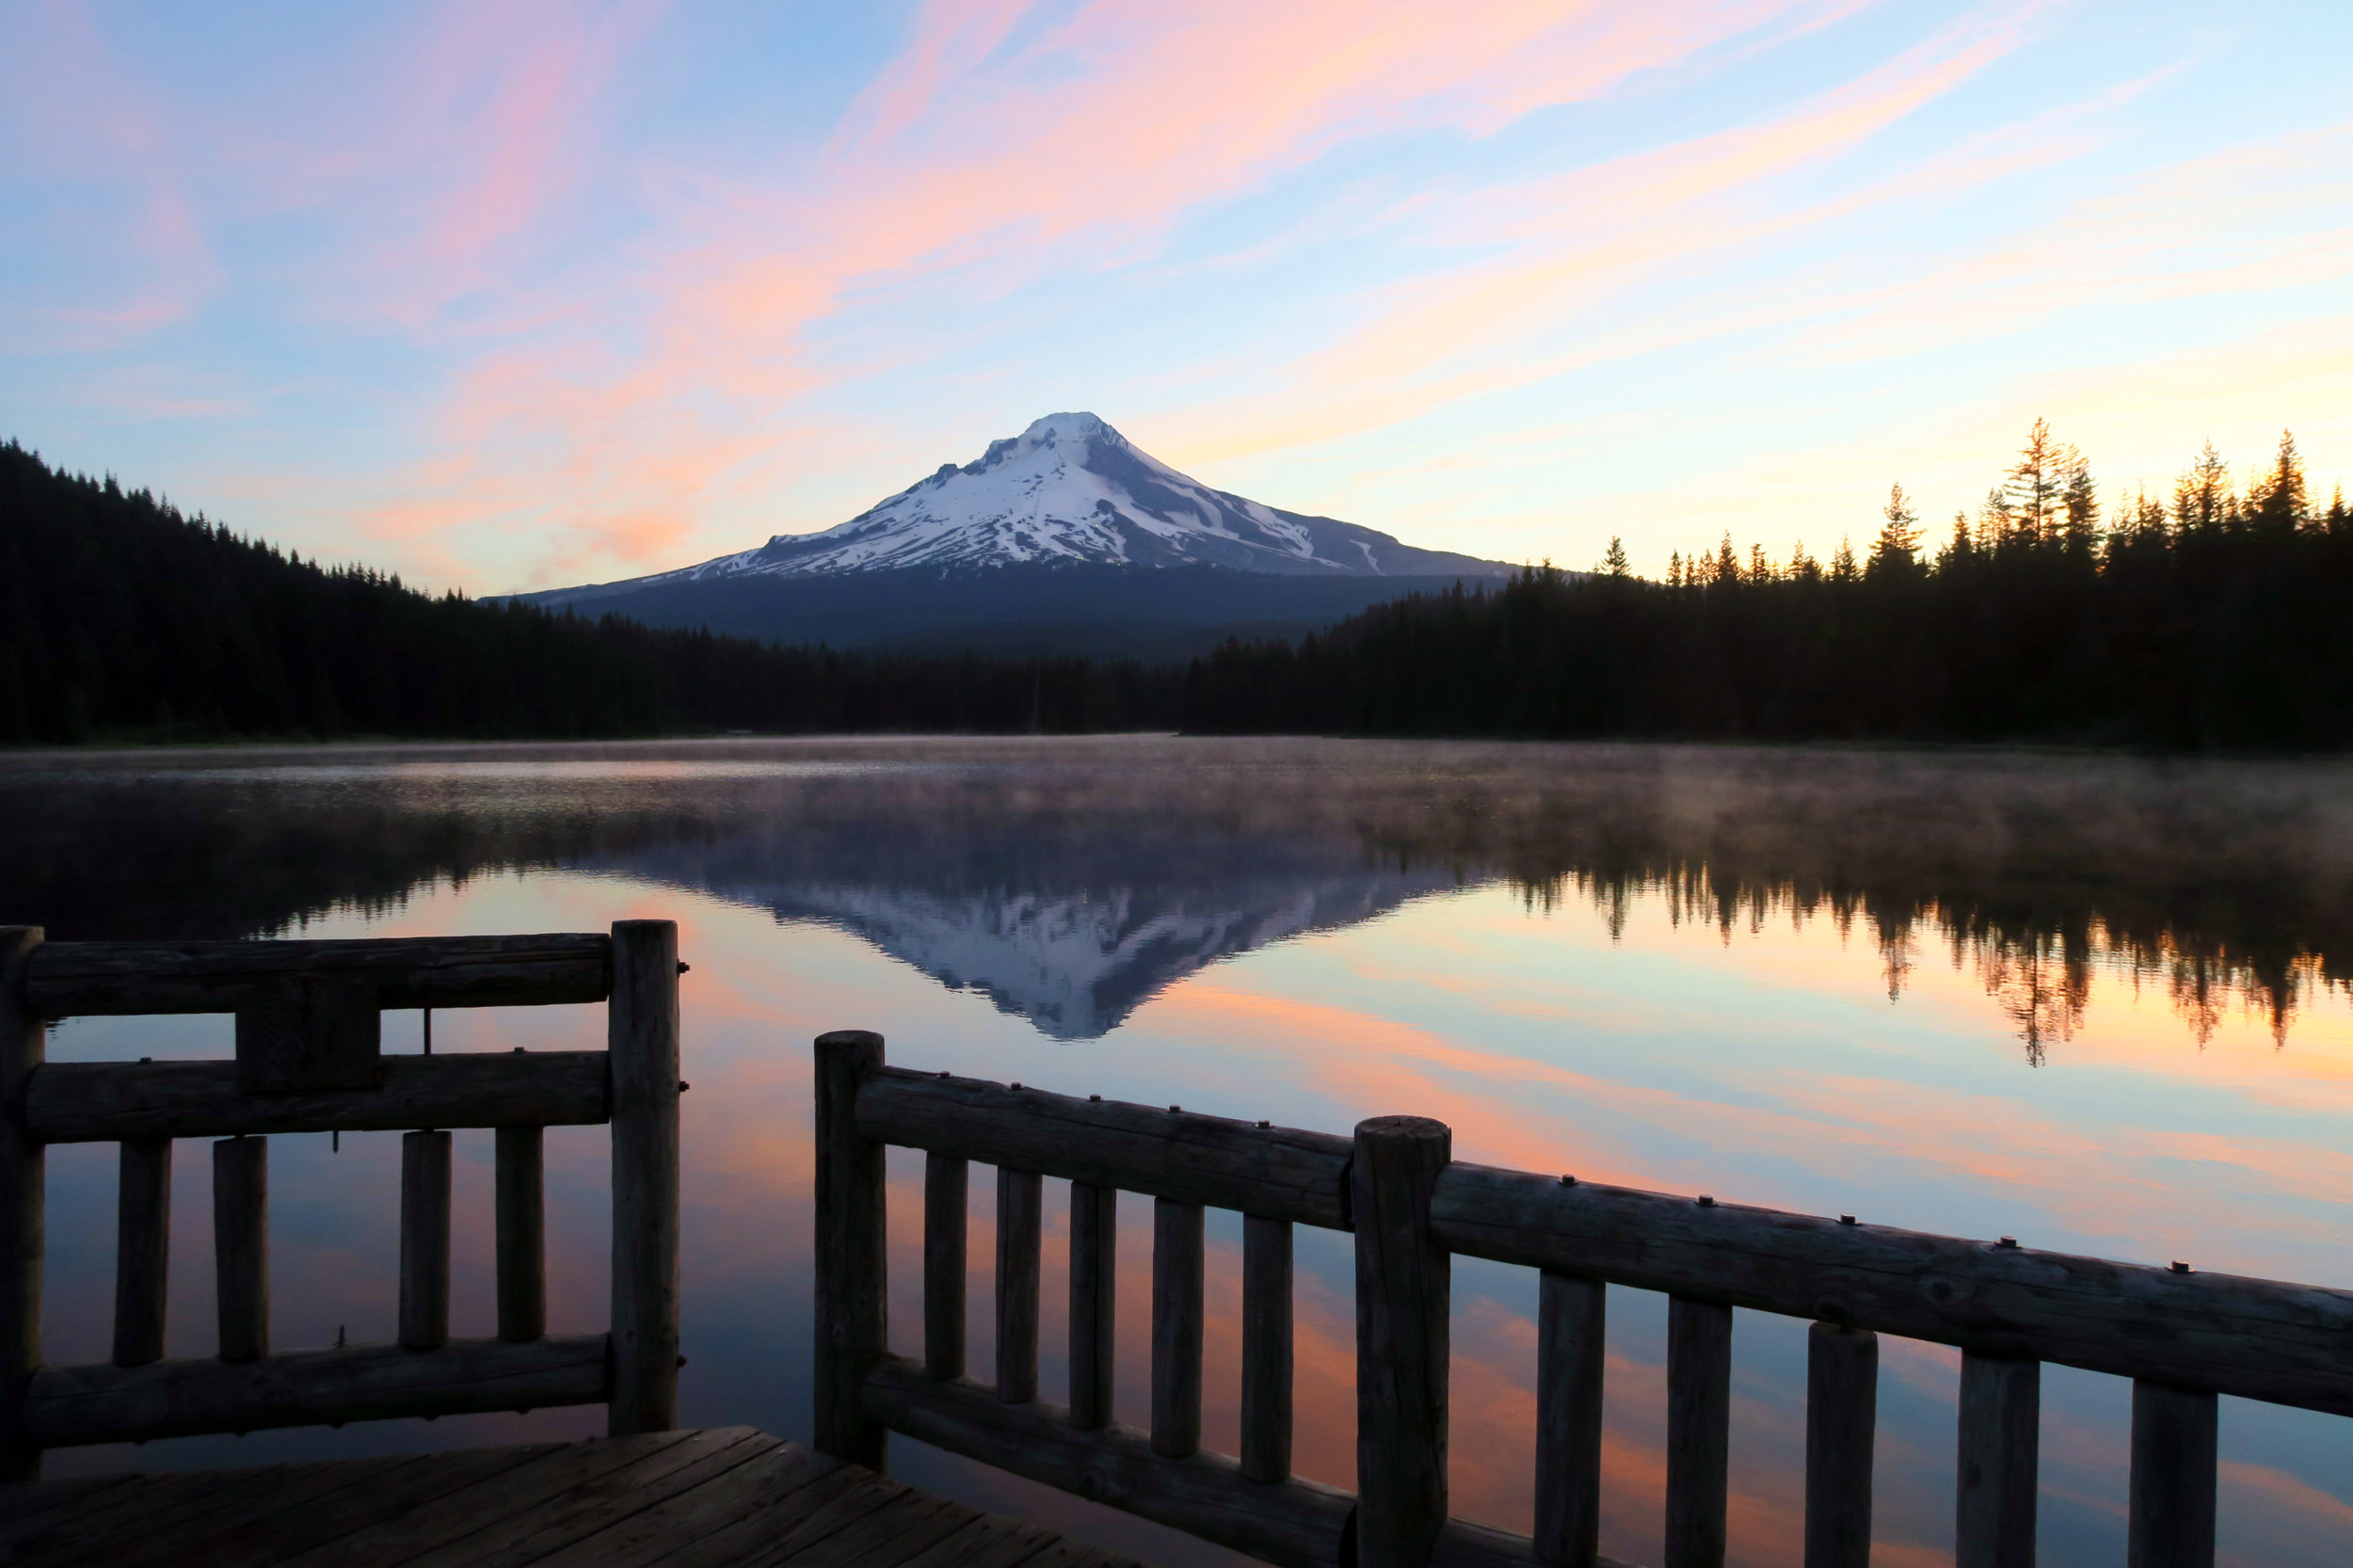 Mt-Hood-Pic-Blog-1.jpg